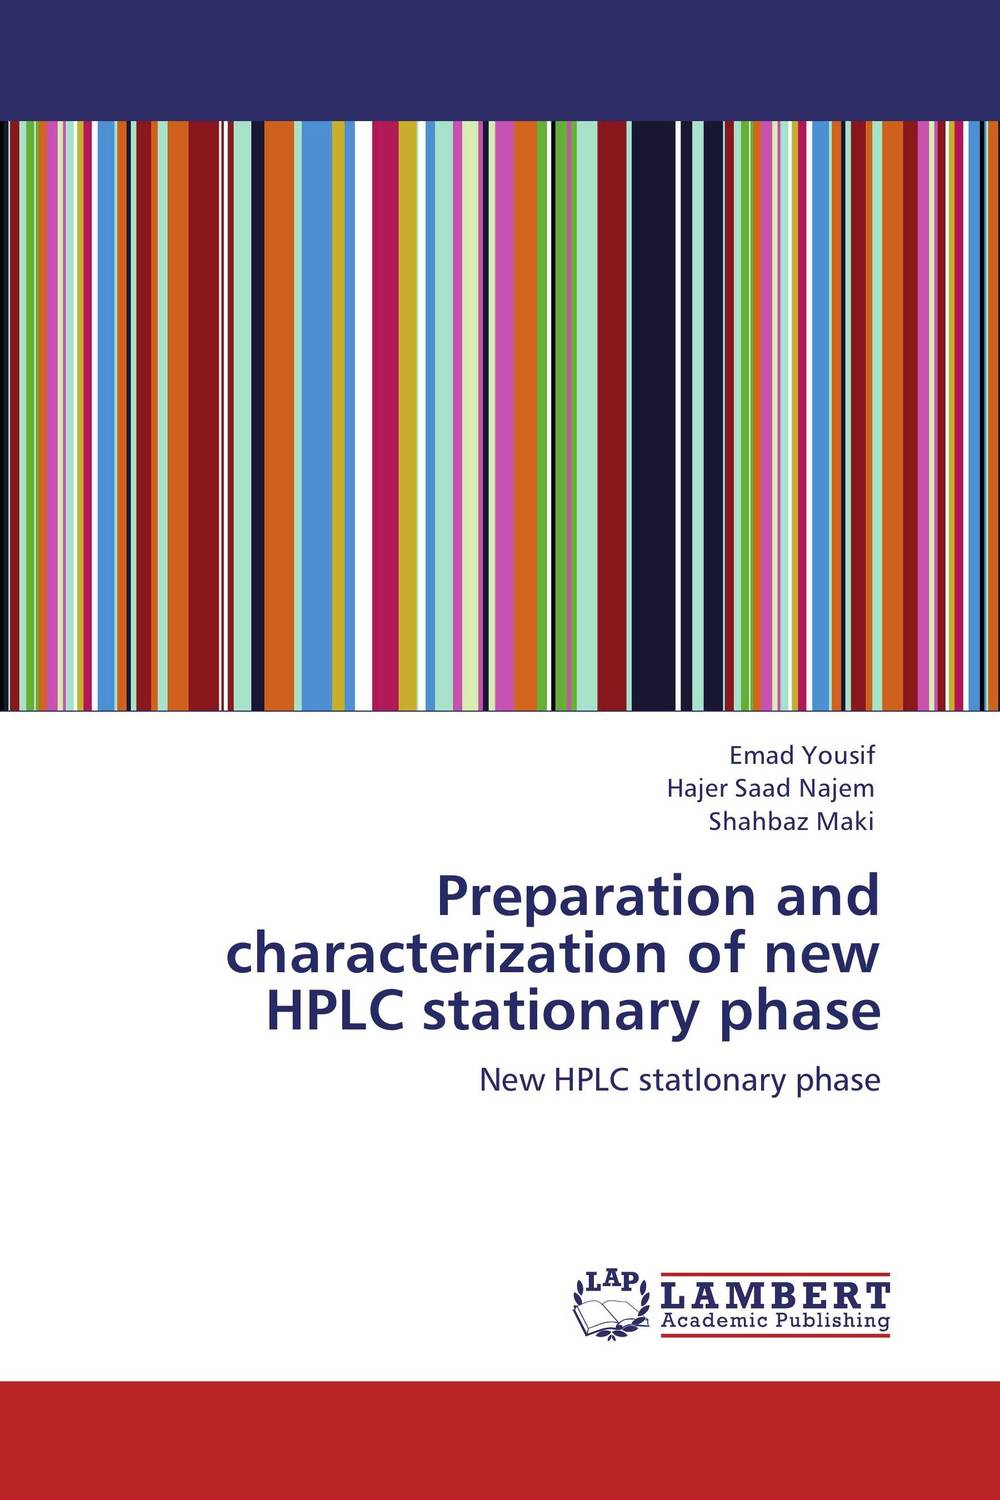 Preparation and characterization of new HPLC stationary phase